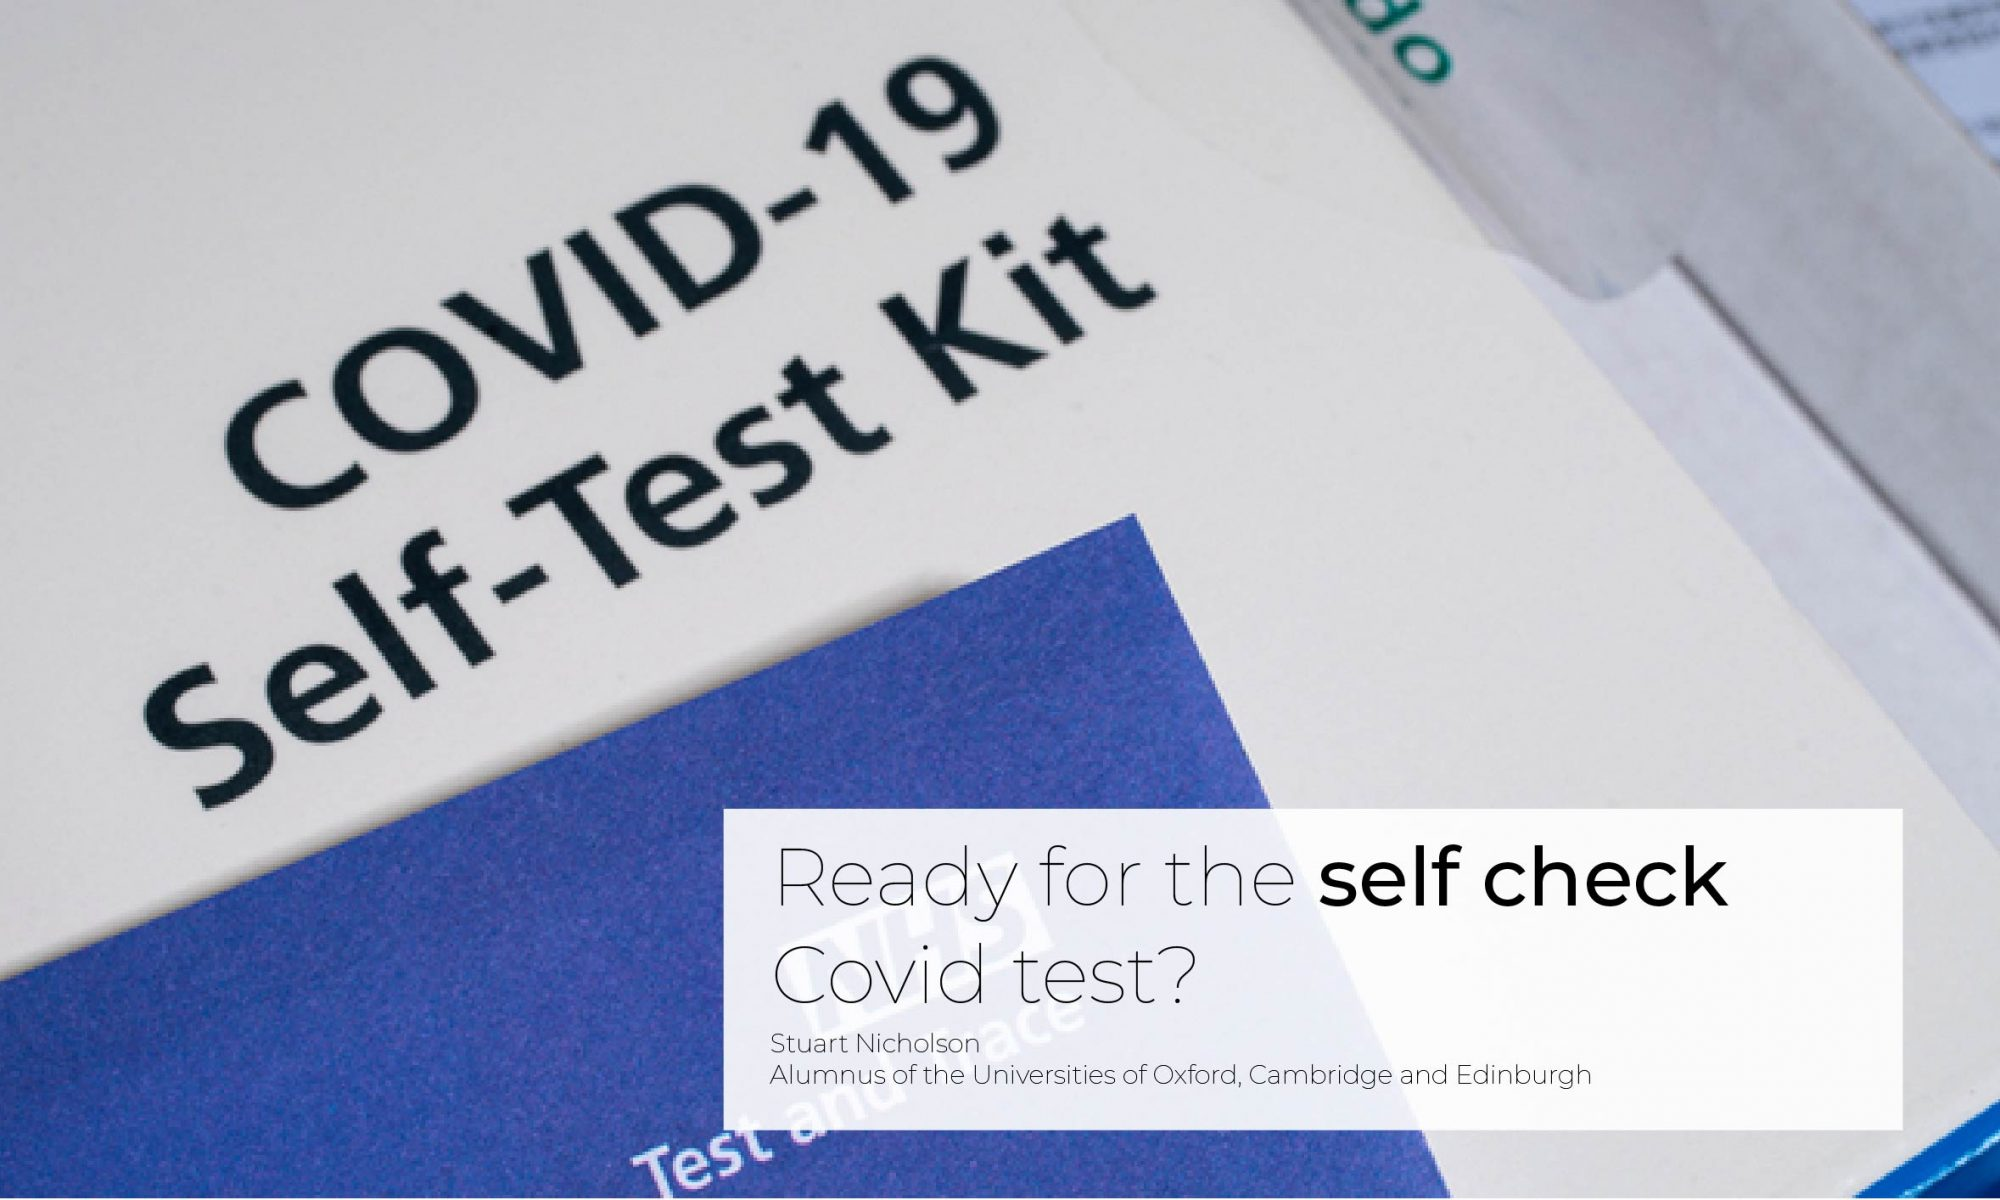 Ready for the self check Covid test?